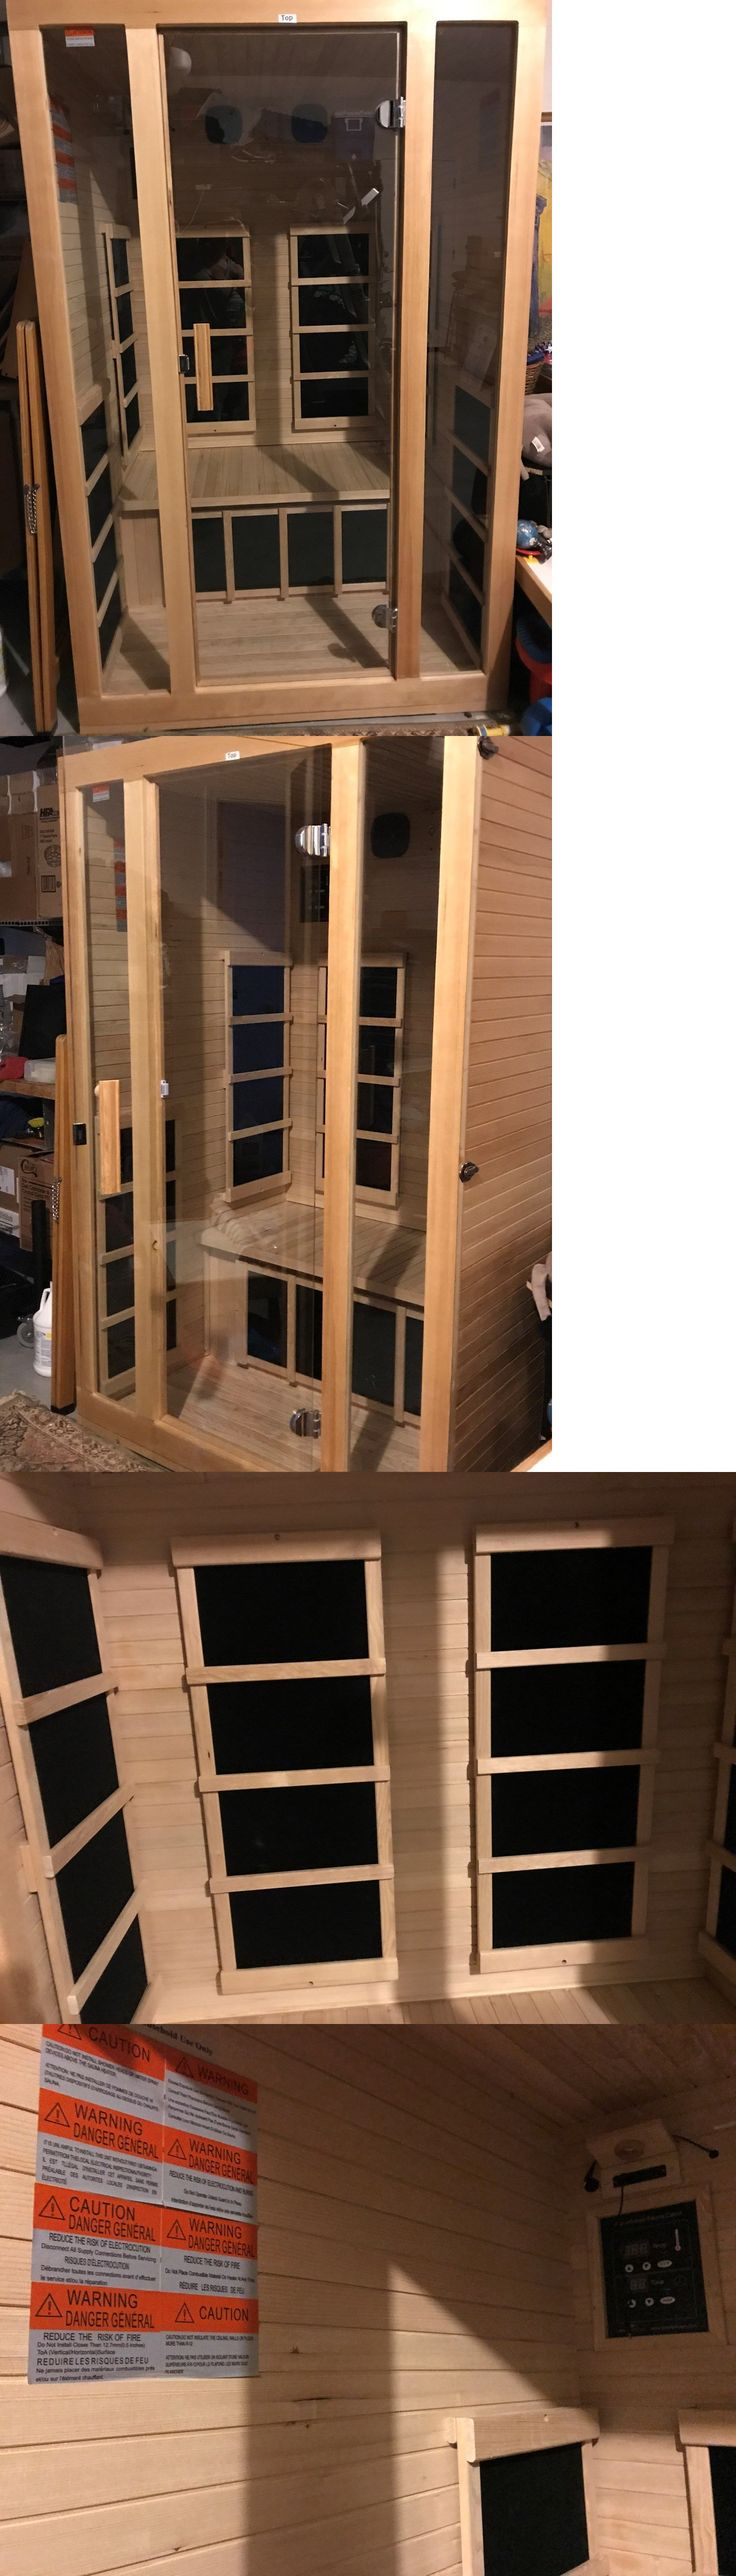 Saunas 181054: Jnh Lifestyles 2 Person Far Infrared Sauna 7 Carbon Fiber Heaters! New!! -> BUY IT NOW ONLY: $800 on eBay!